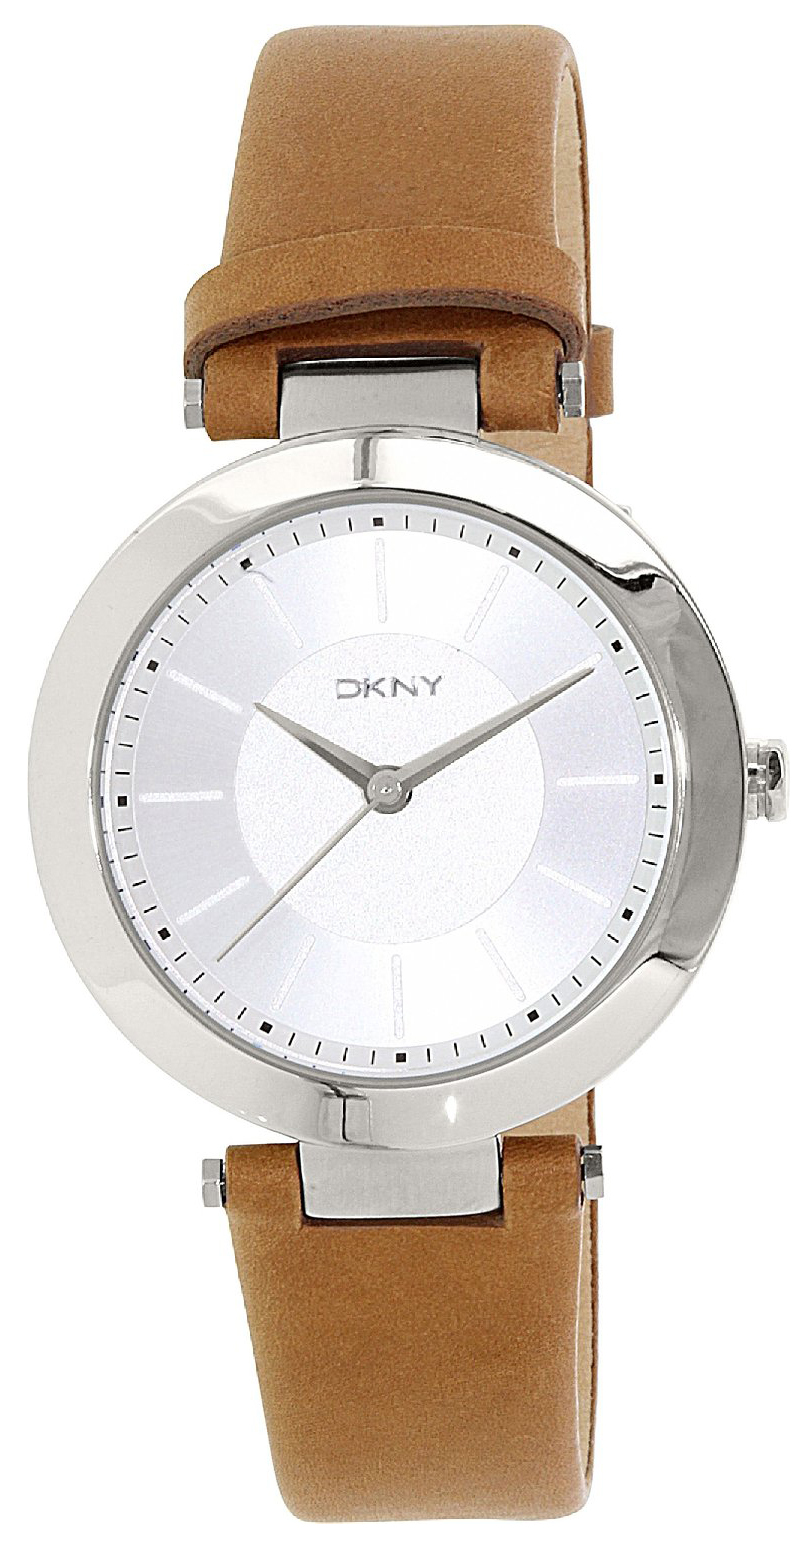 DKNY Dress Dameklokke NY2293 Sølvfarget/Lær Ø36 mm - DKNY